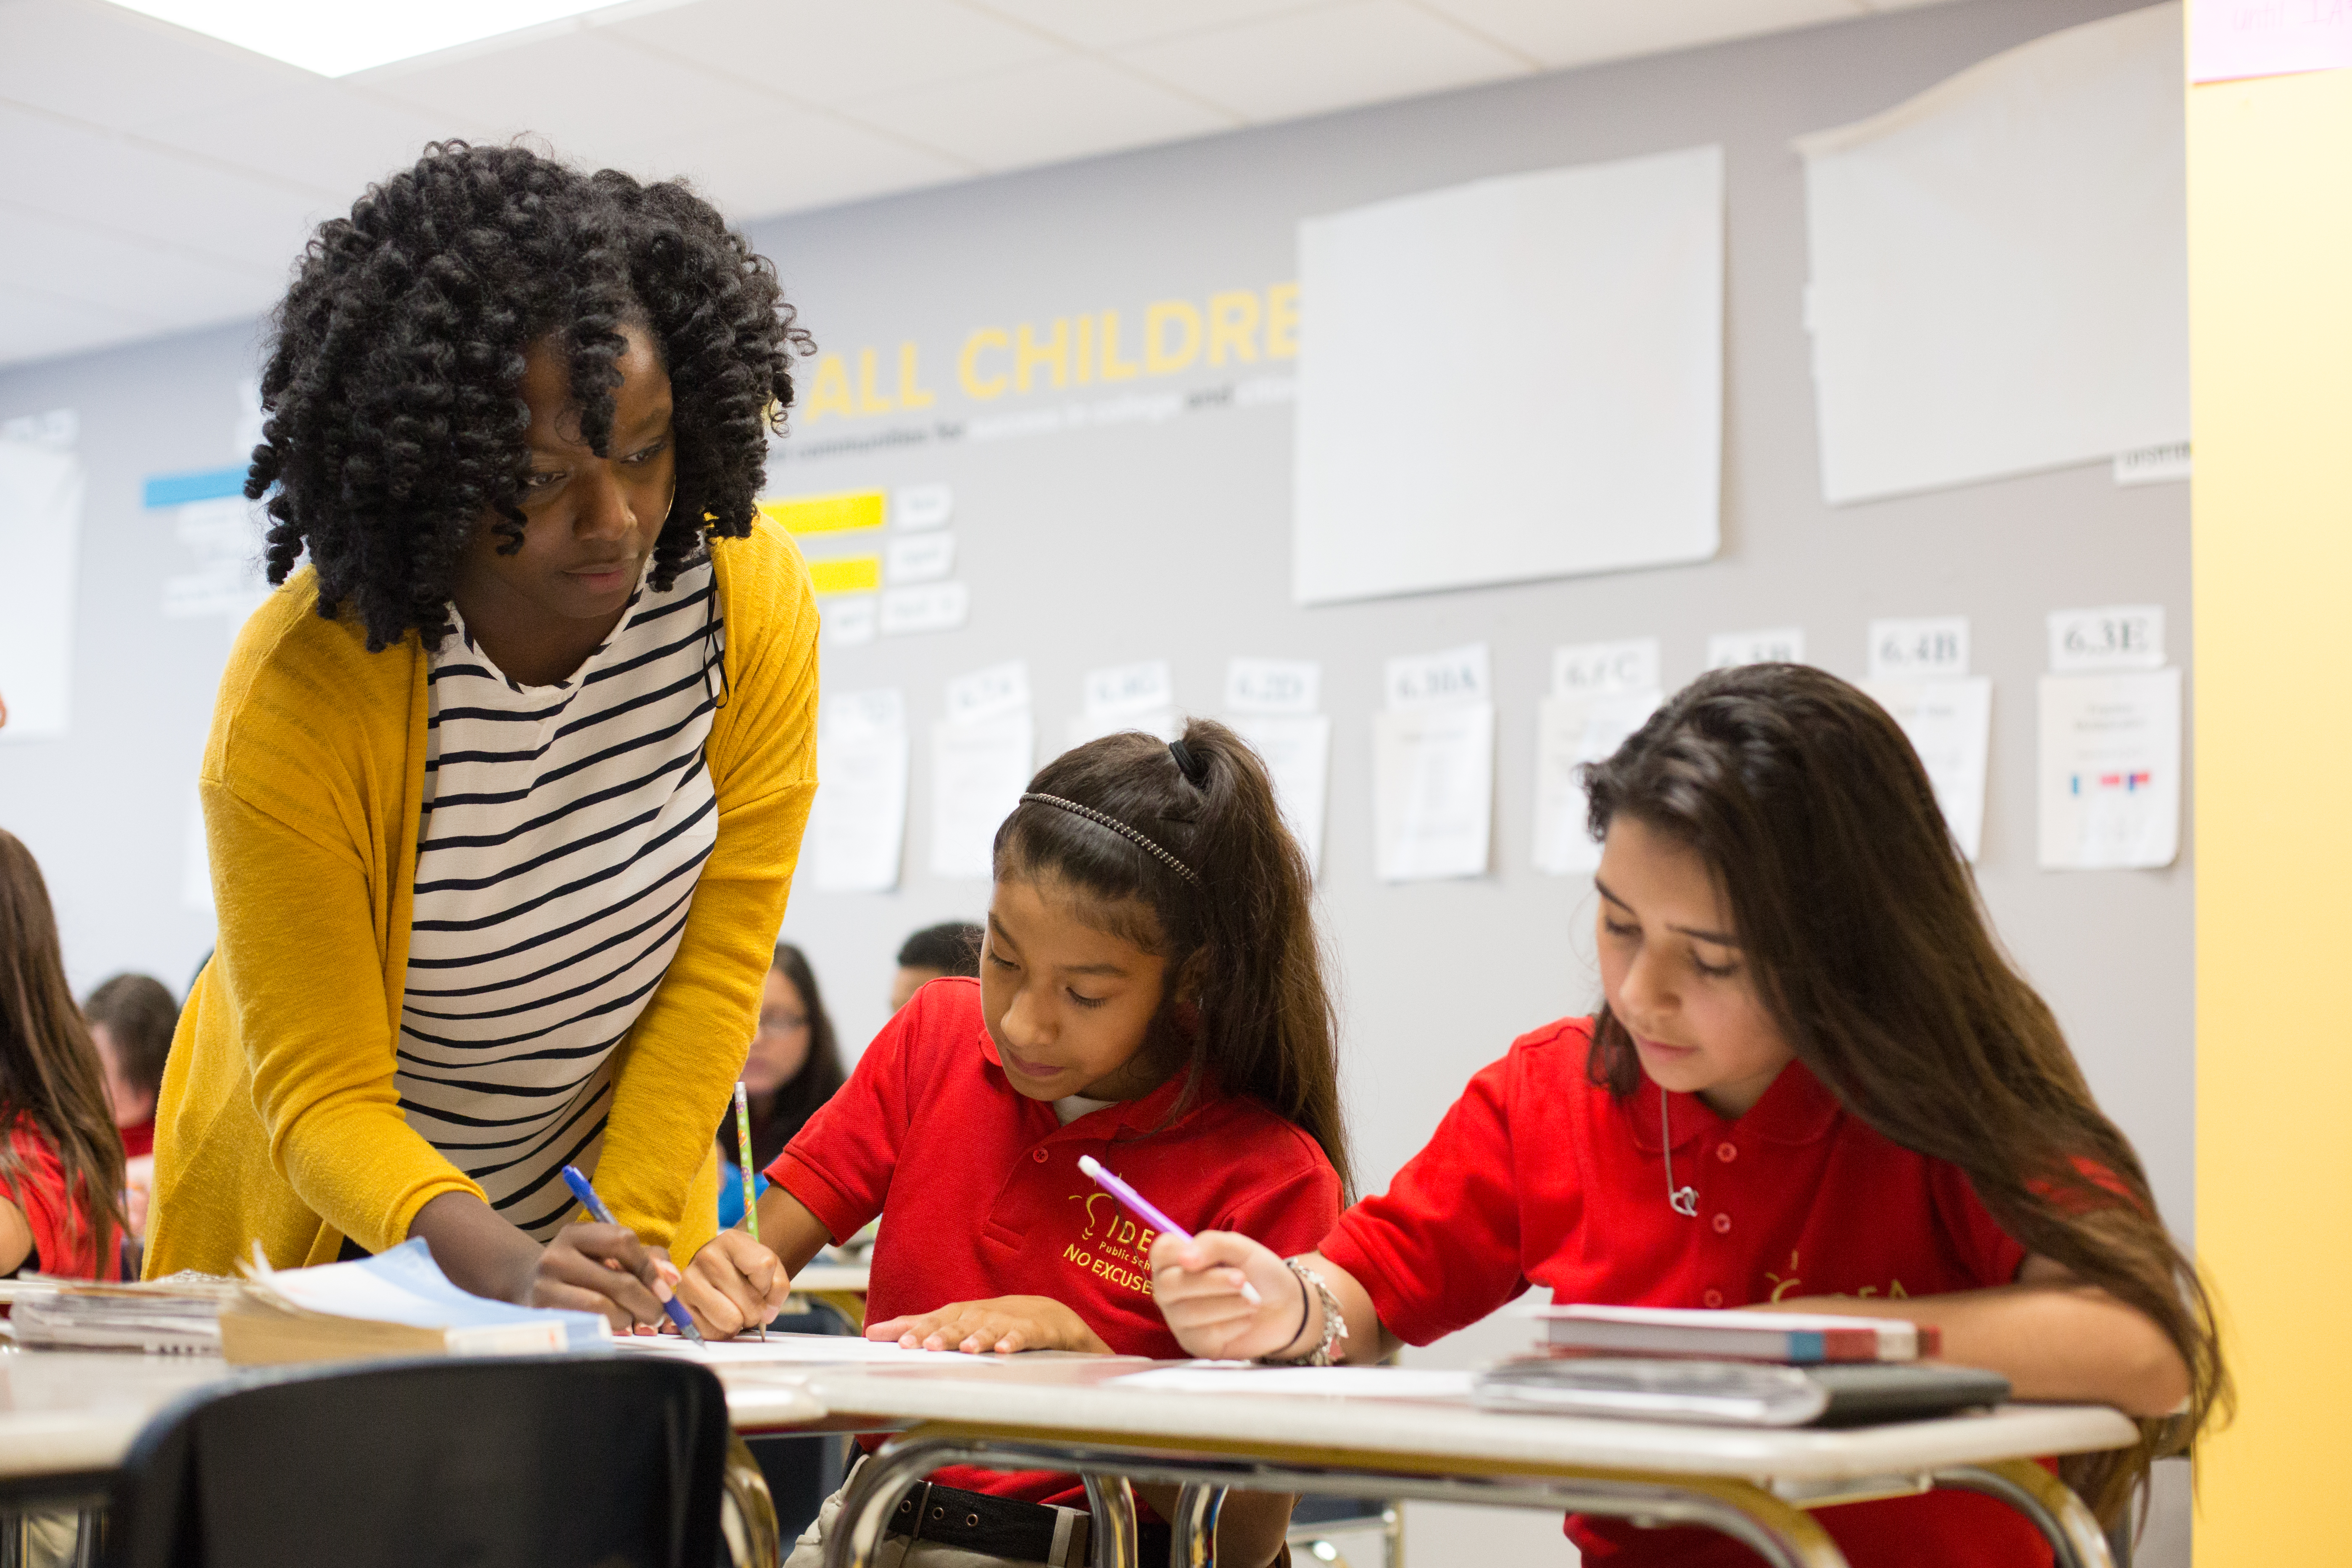 apply today: the idea public schools 2019-2020 student applications